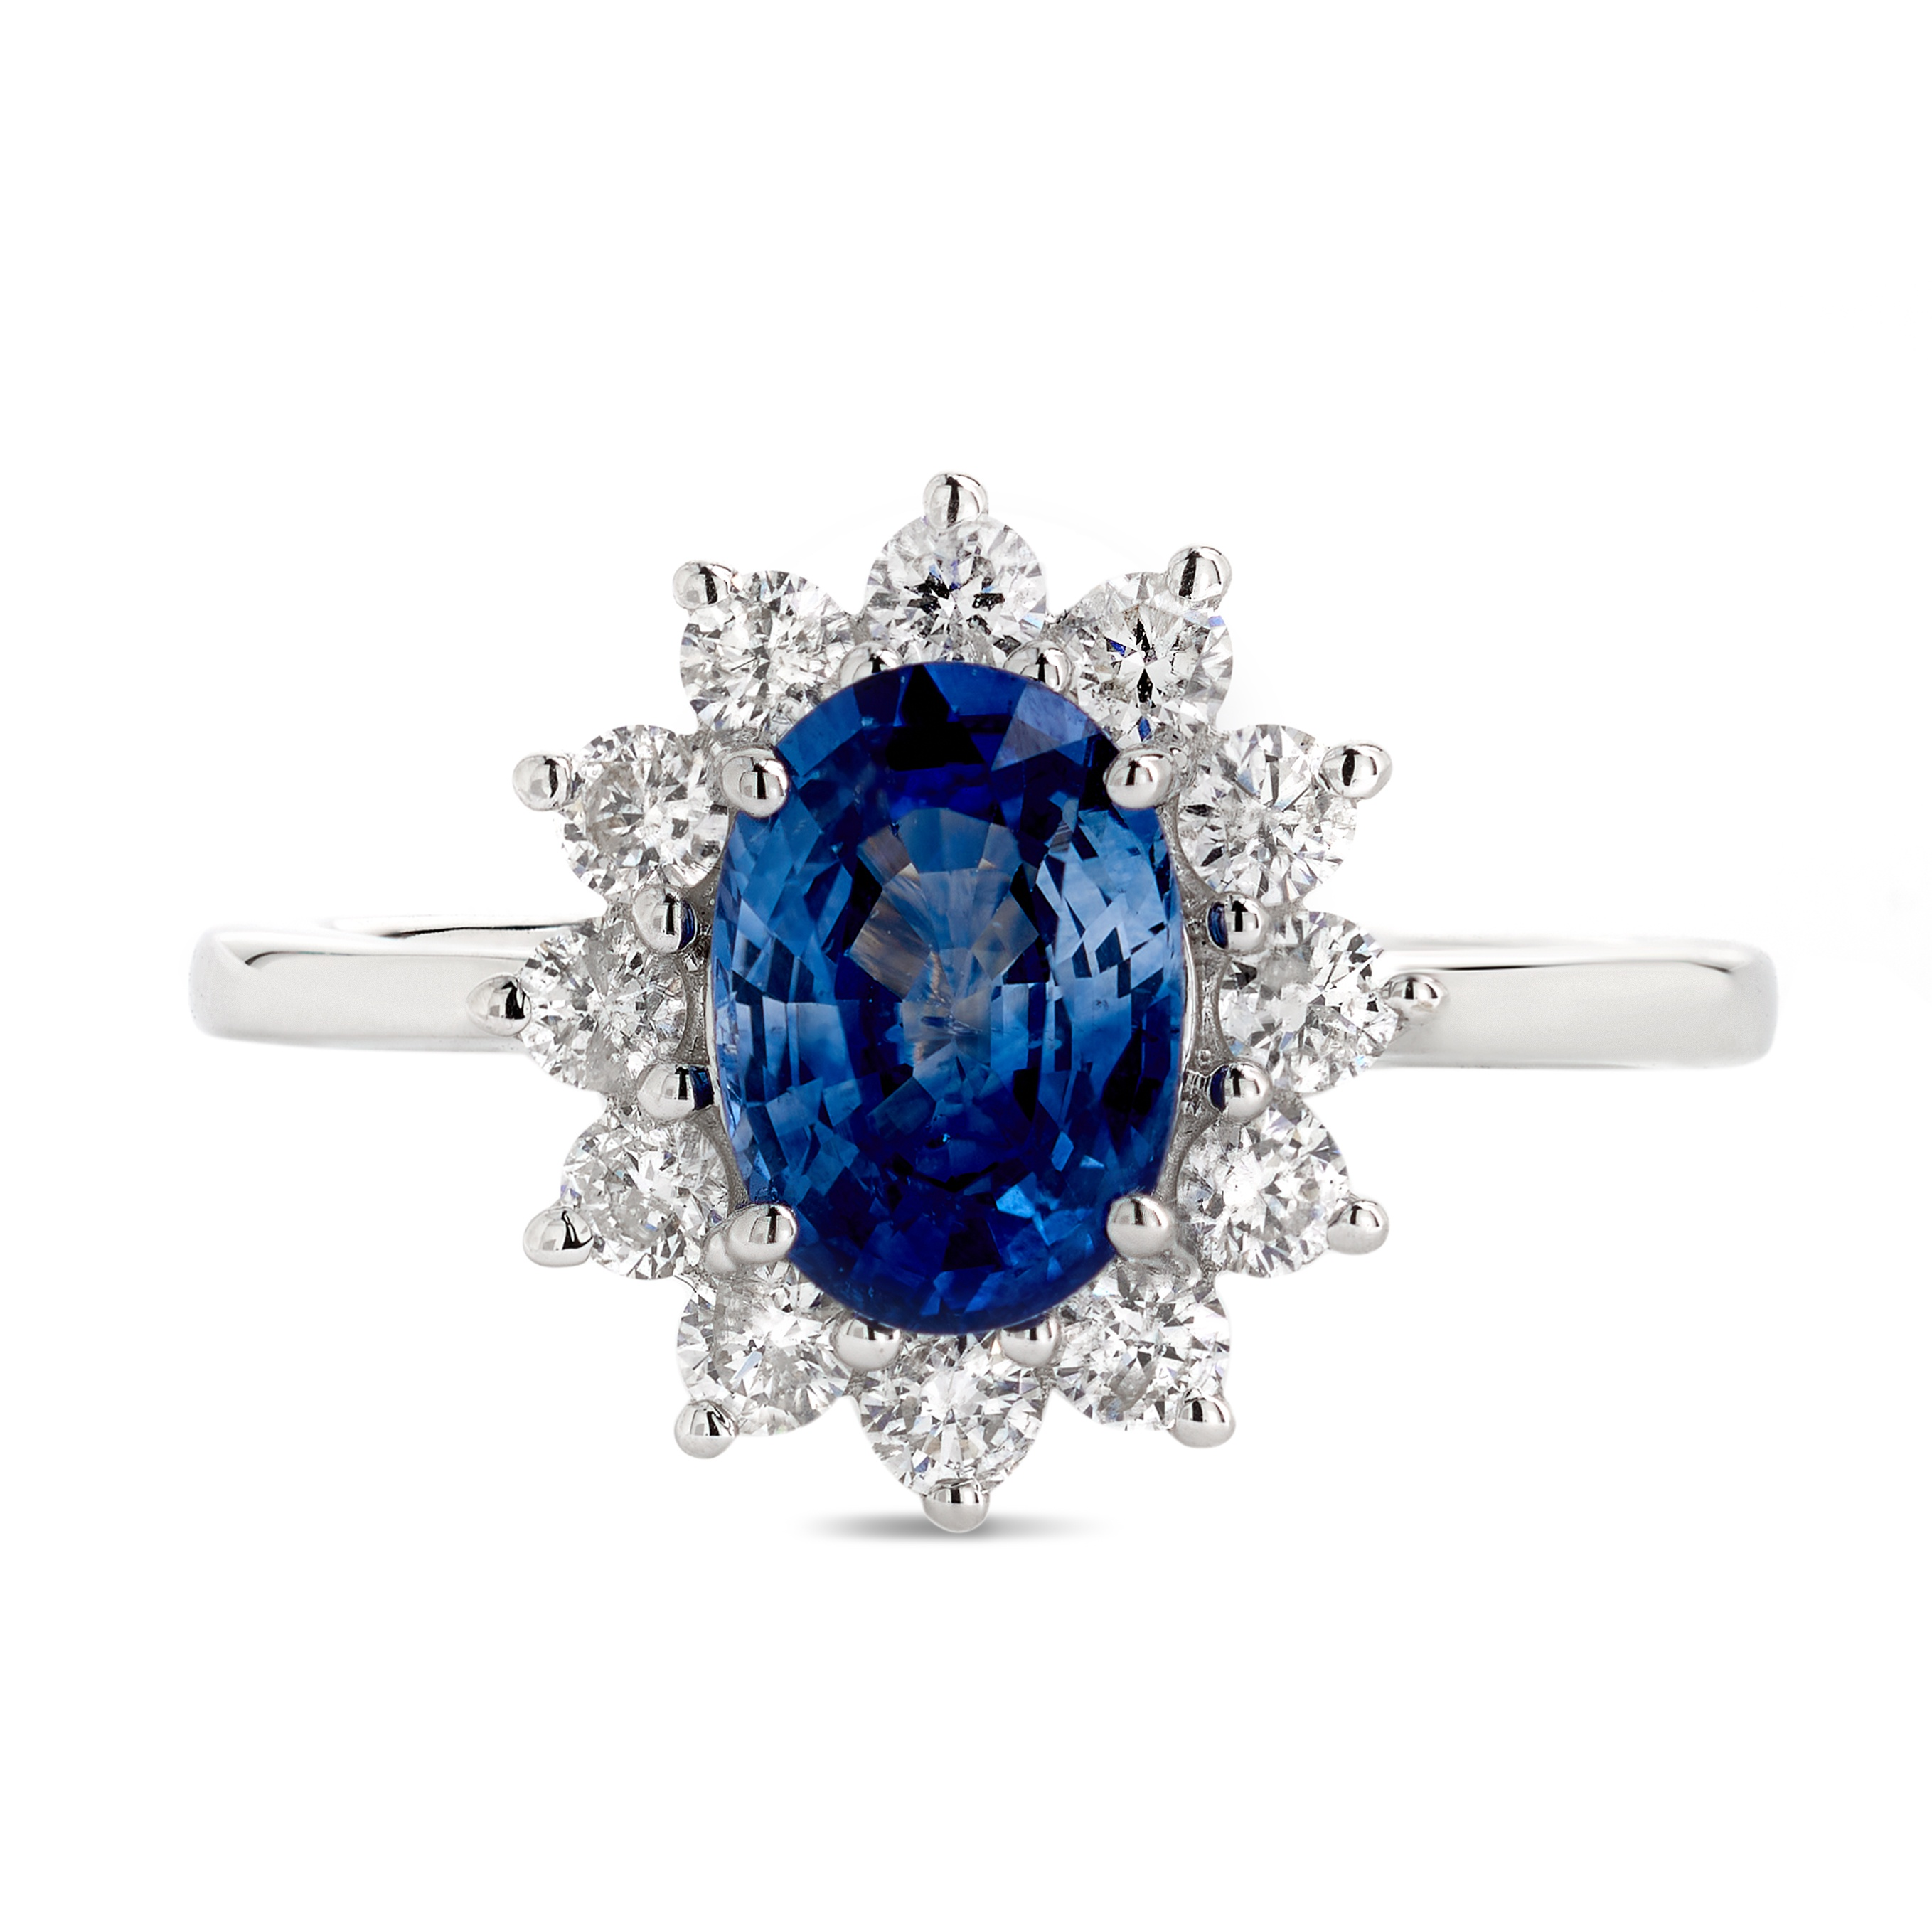 18ct White Gold Sapphire and Diamond Cluster Ring – Medium